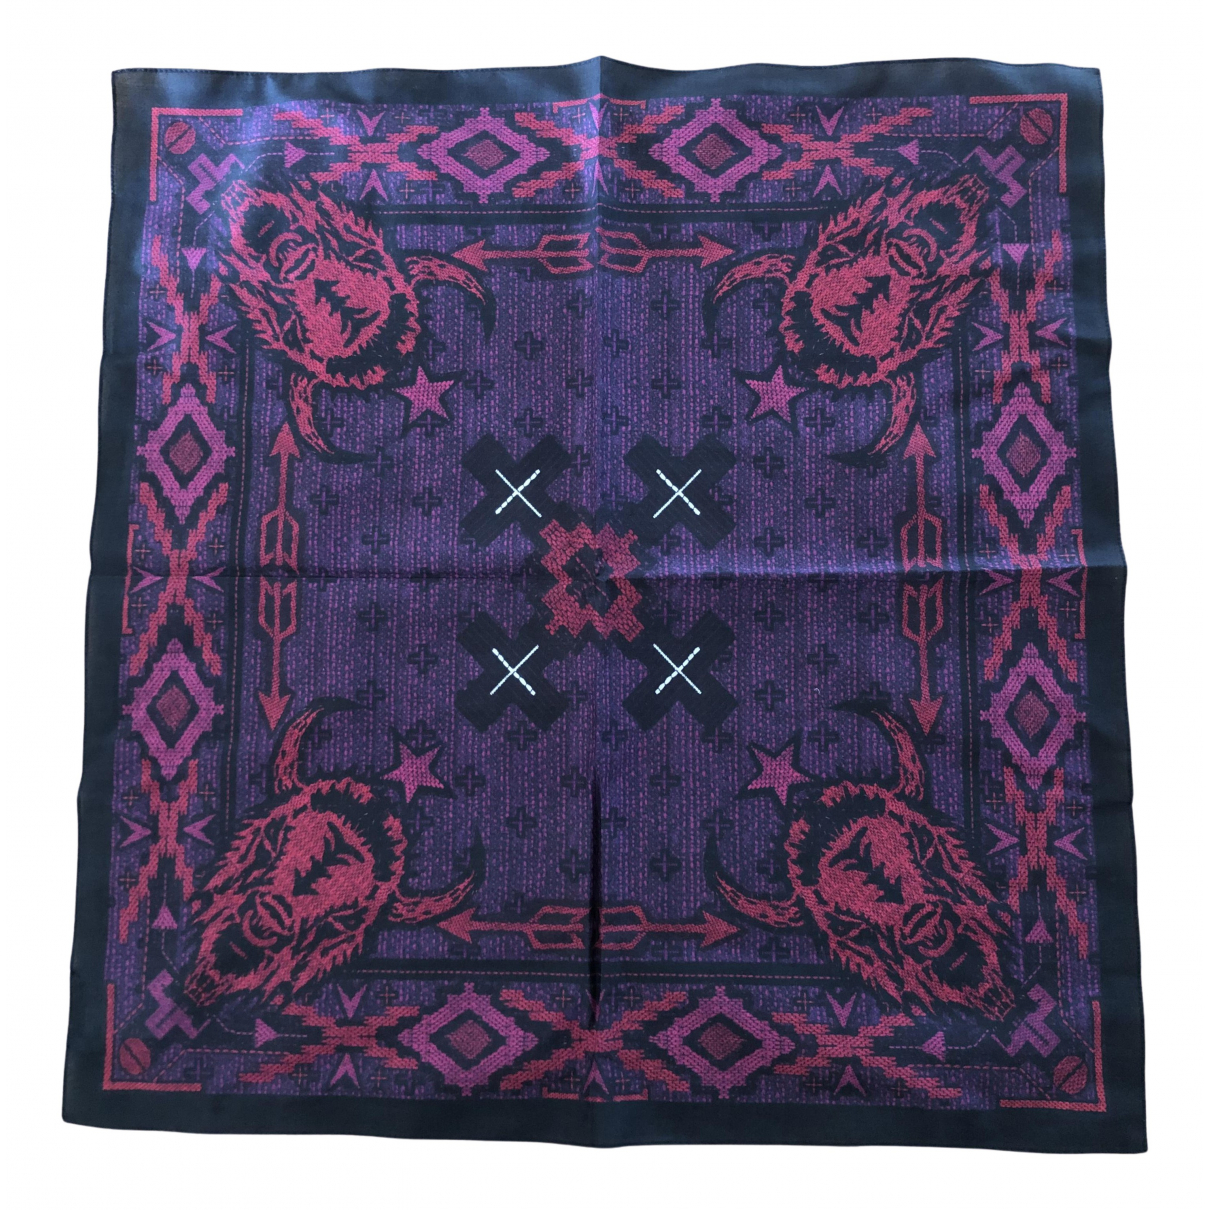 Givenchy N Burgundy Cotton scarf for Women N